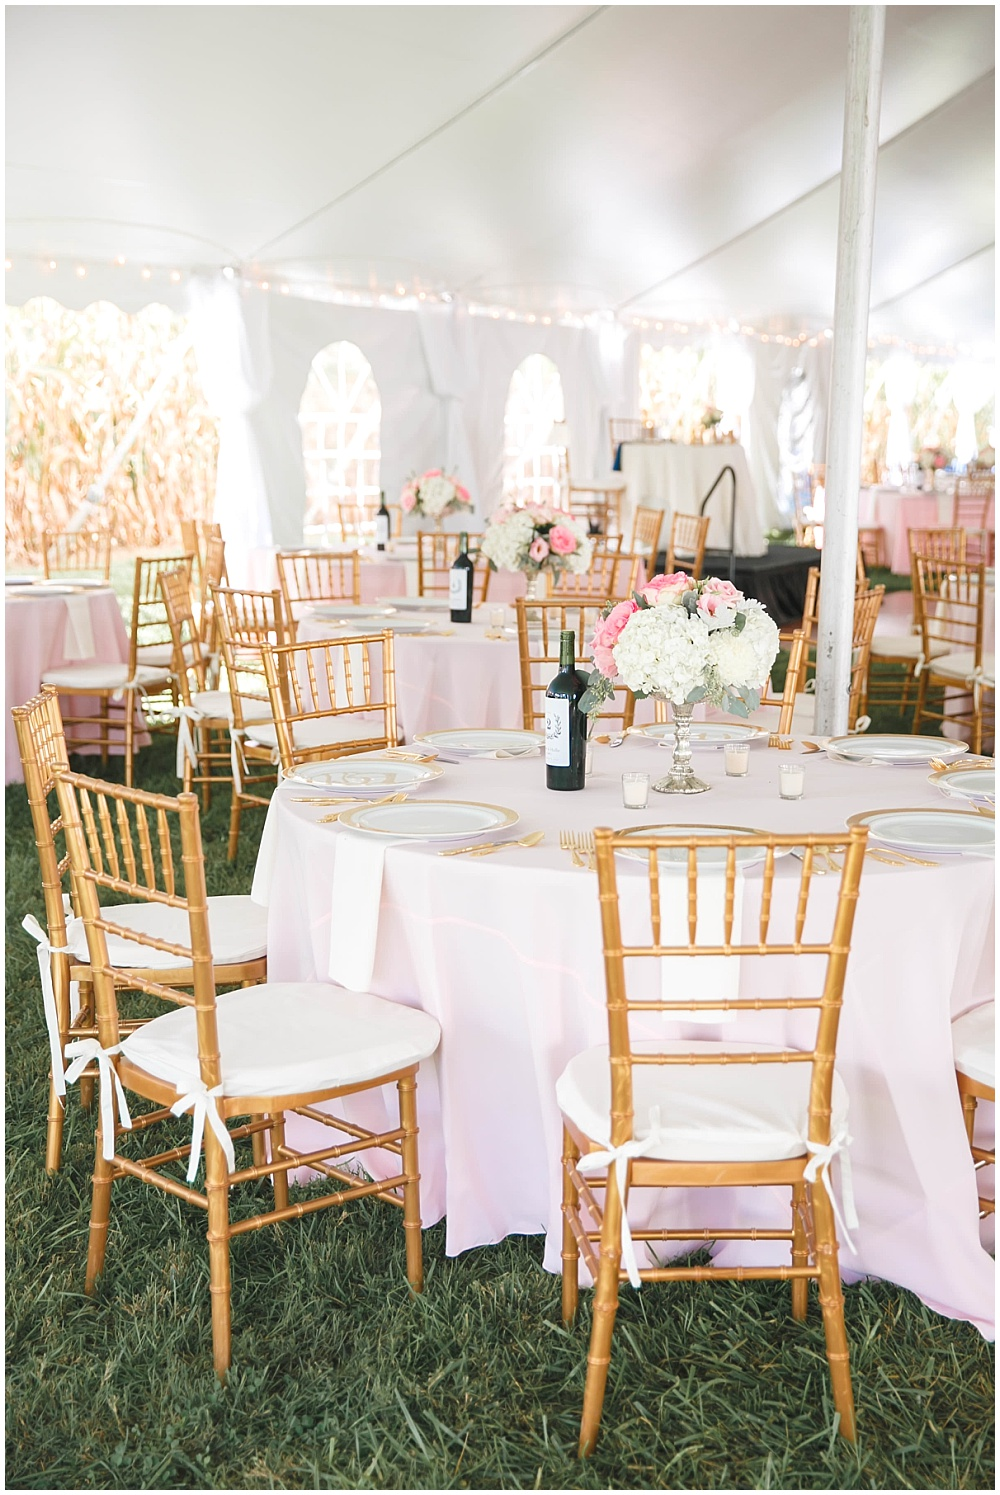 Blush and gold wedding tablescape | Family Farm wedding by SB Childs Photography & Jessica Dum Wedding Coordination